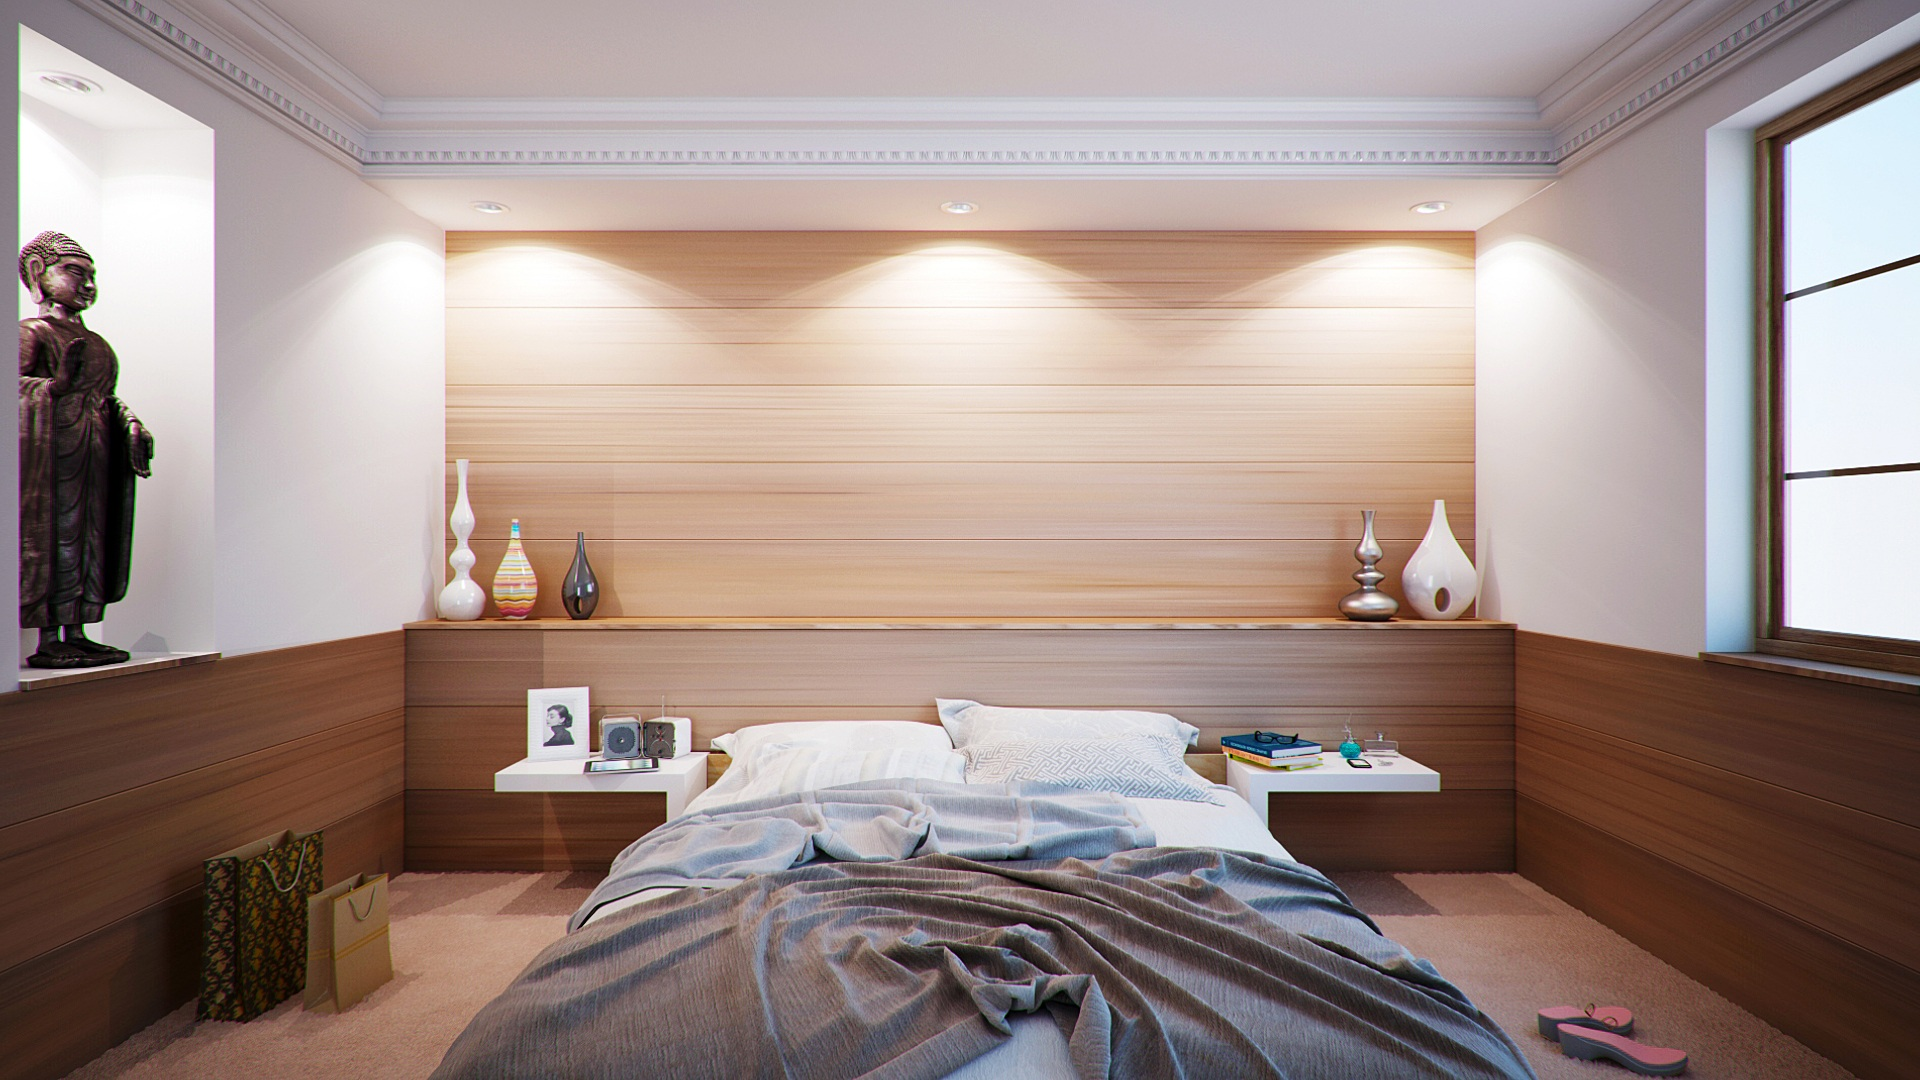 8 tips to help You choose the right modern bedroom furniture